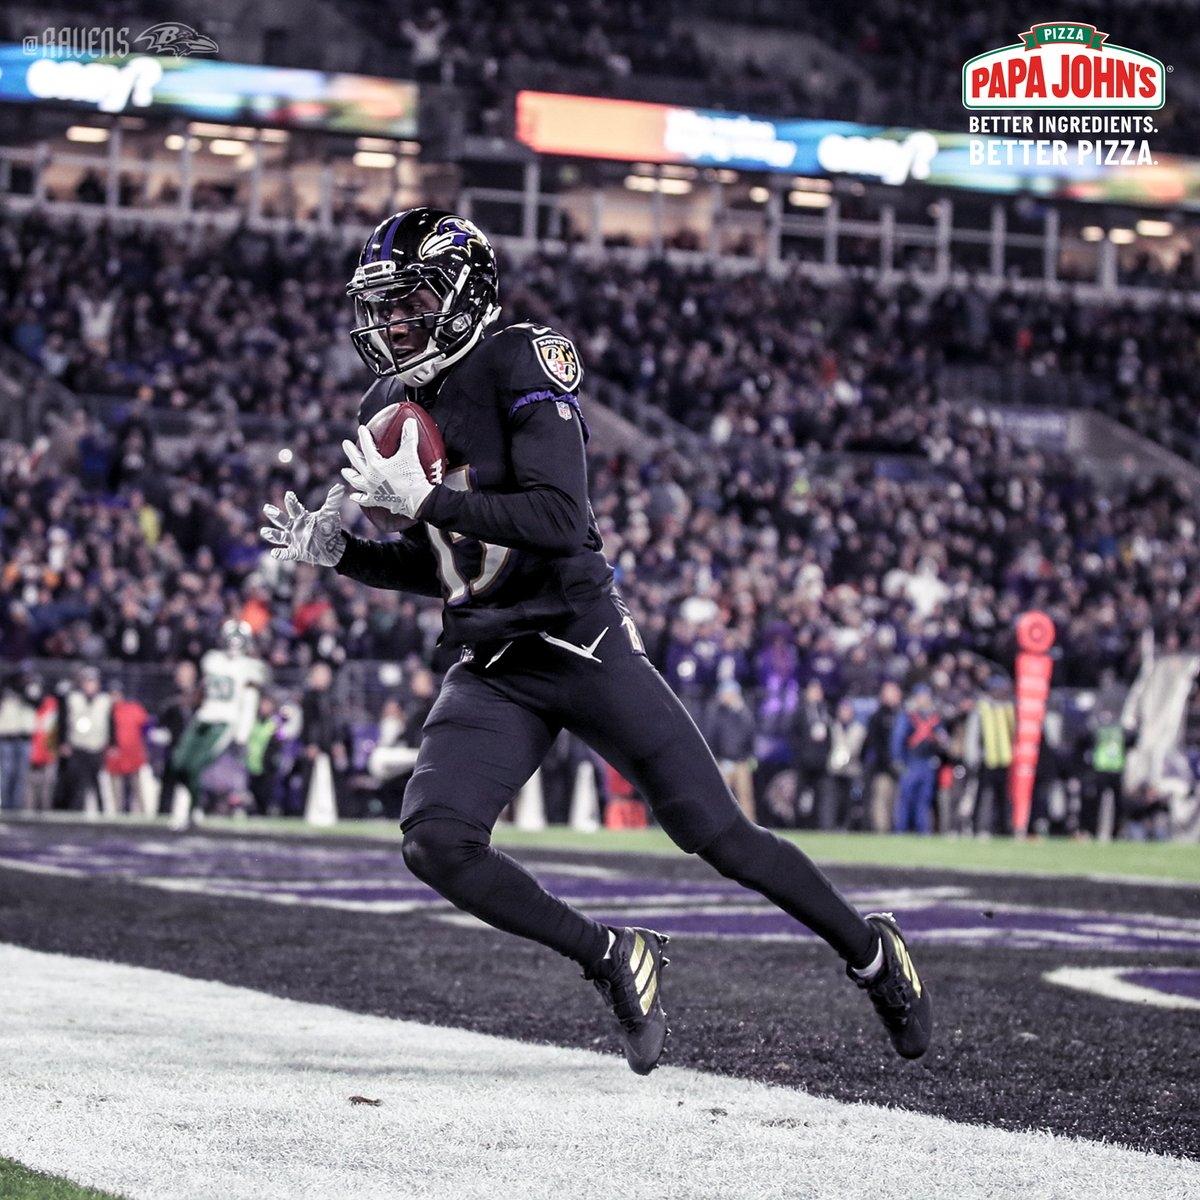 TOE. DRAG. SWAG.   @Primetime_jet's clutch TD is the Papa John's Play of the Game!  Get 50% off your order at @PapaJohnsBal today by using the promo code RAVENS50!